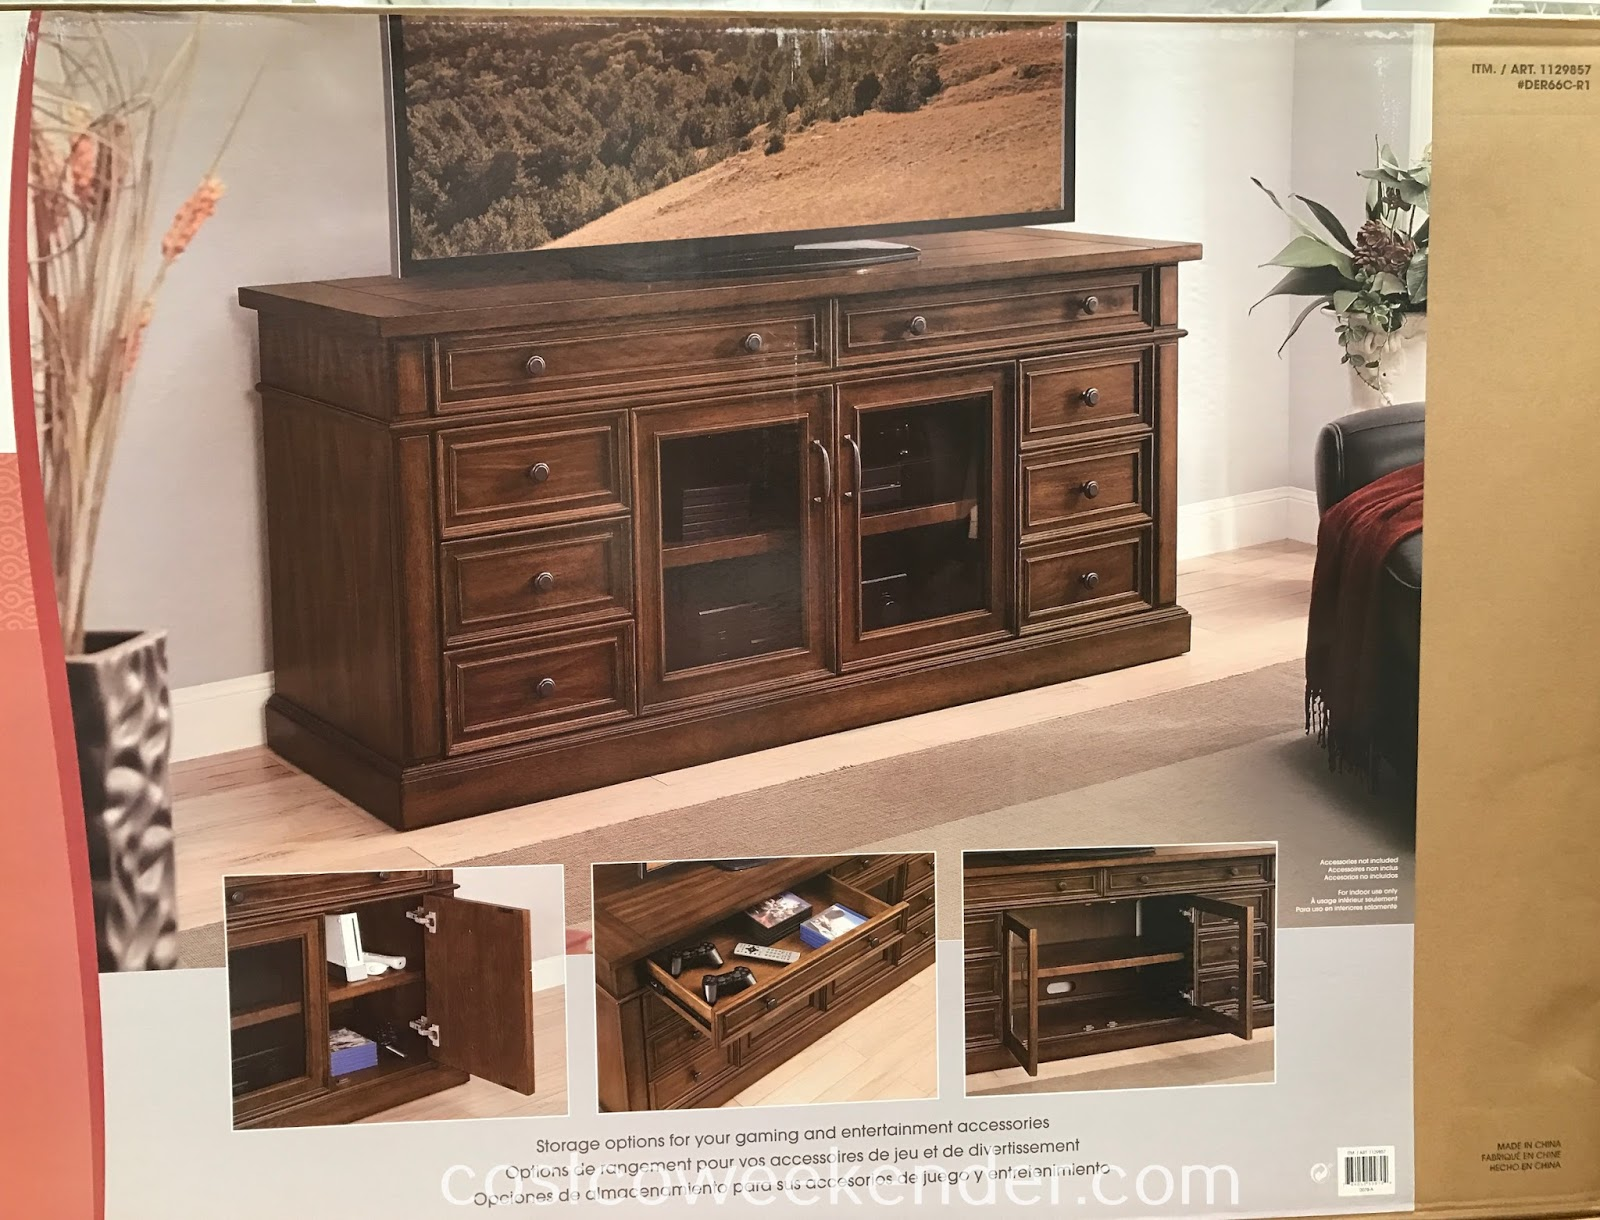 Costco 1129857 - Make the Bayside Furnishings TV Console part of your entertainment system